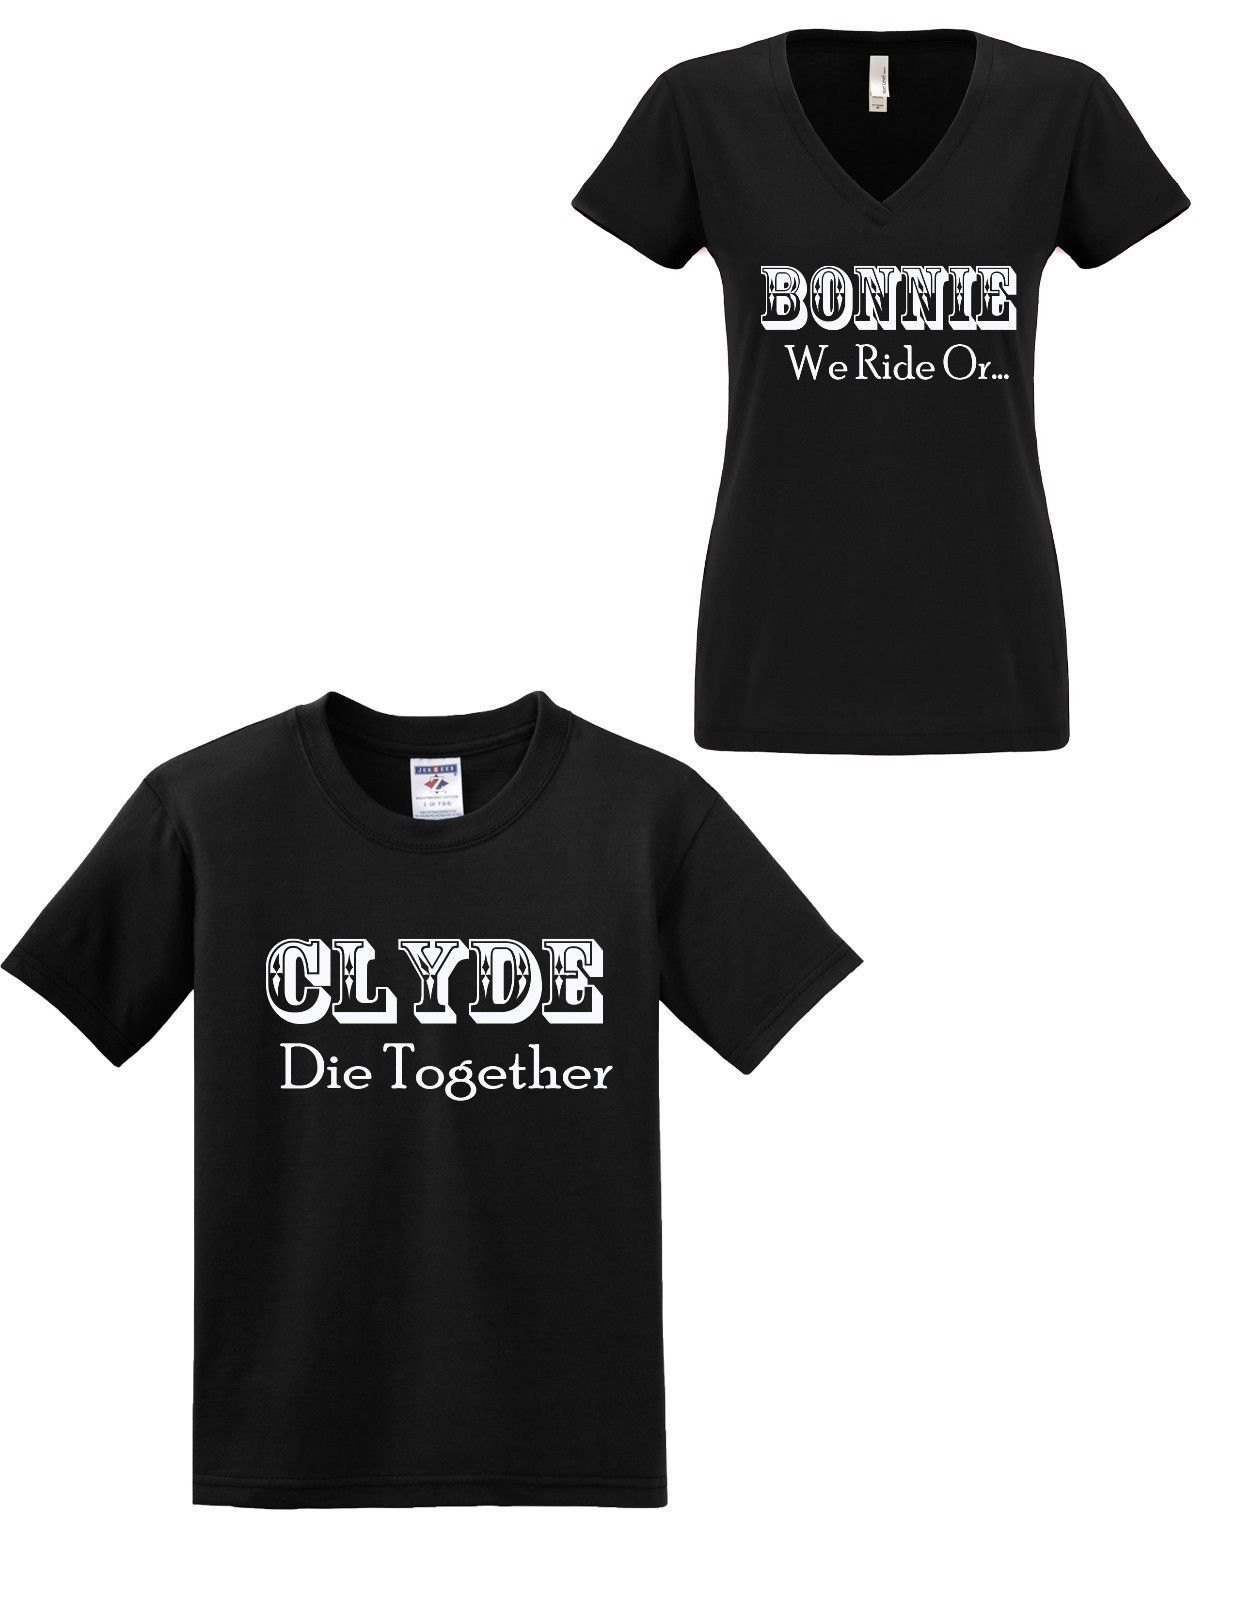 dc4ff984b7 Bonnie And Clyde T-Shirt We Ride Or Die Together Couples Valentine Day Idea